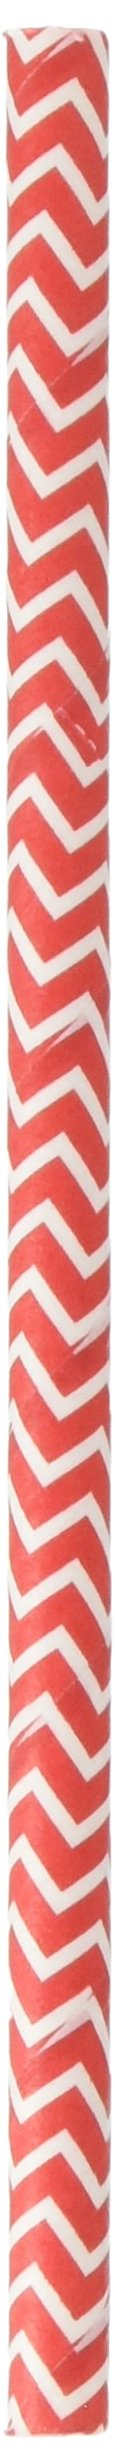 """Simply Baked Large Baking Cups, 5.5"""" long - Pack of 25, Scarlet Chevron"""